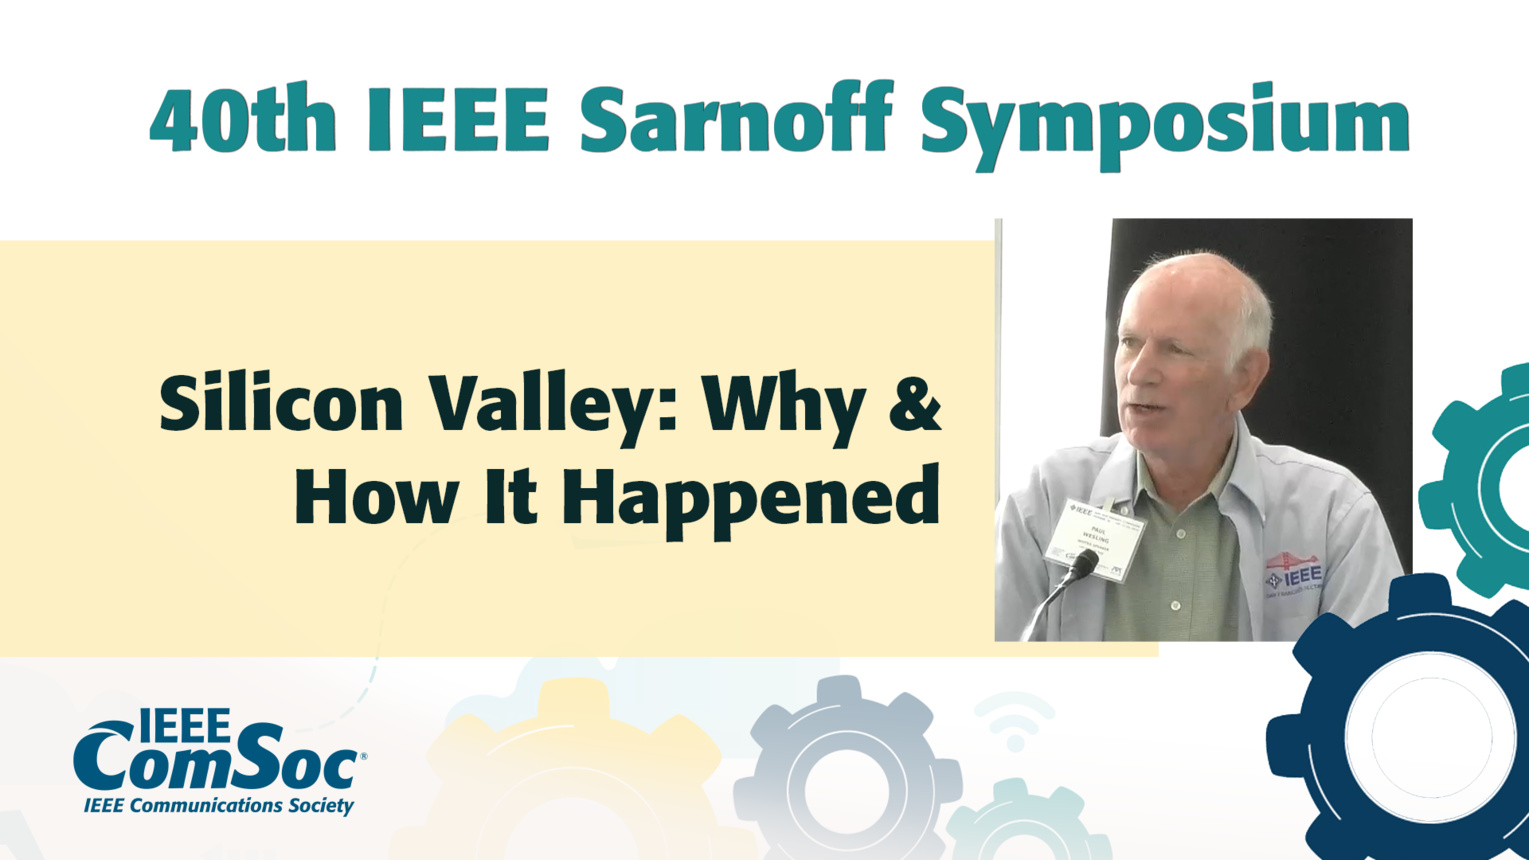 Origins of Silicon Valley - Paul Wesling - IEEE Sarnoff Symposium, 2019